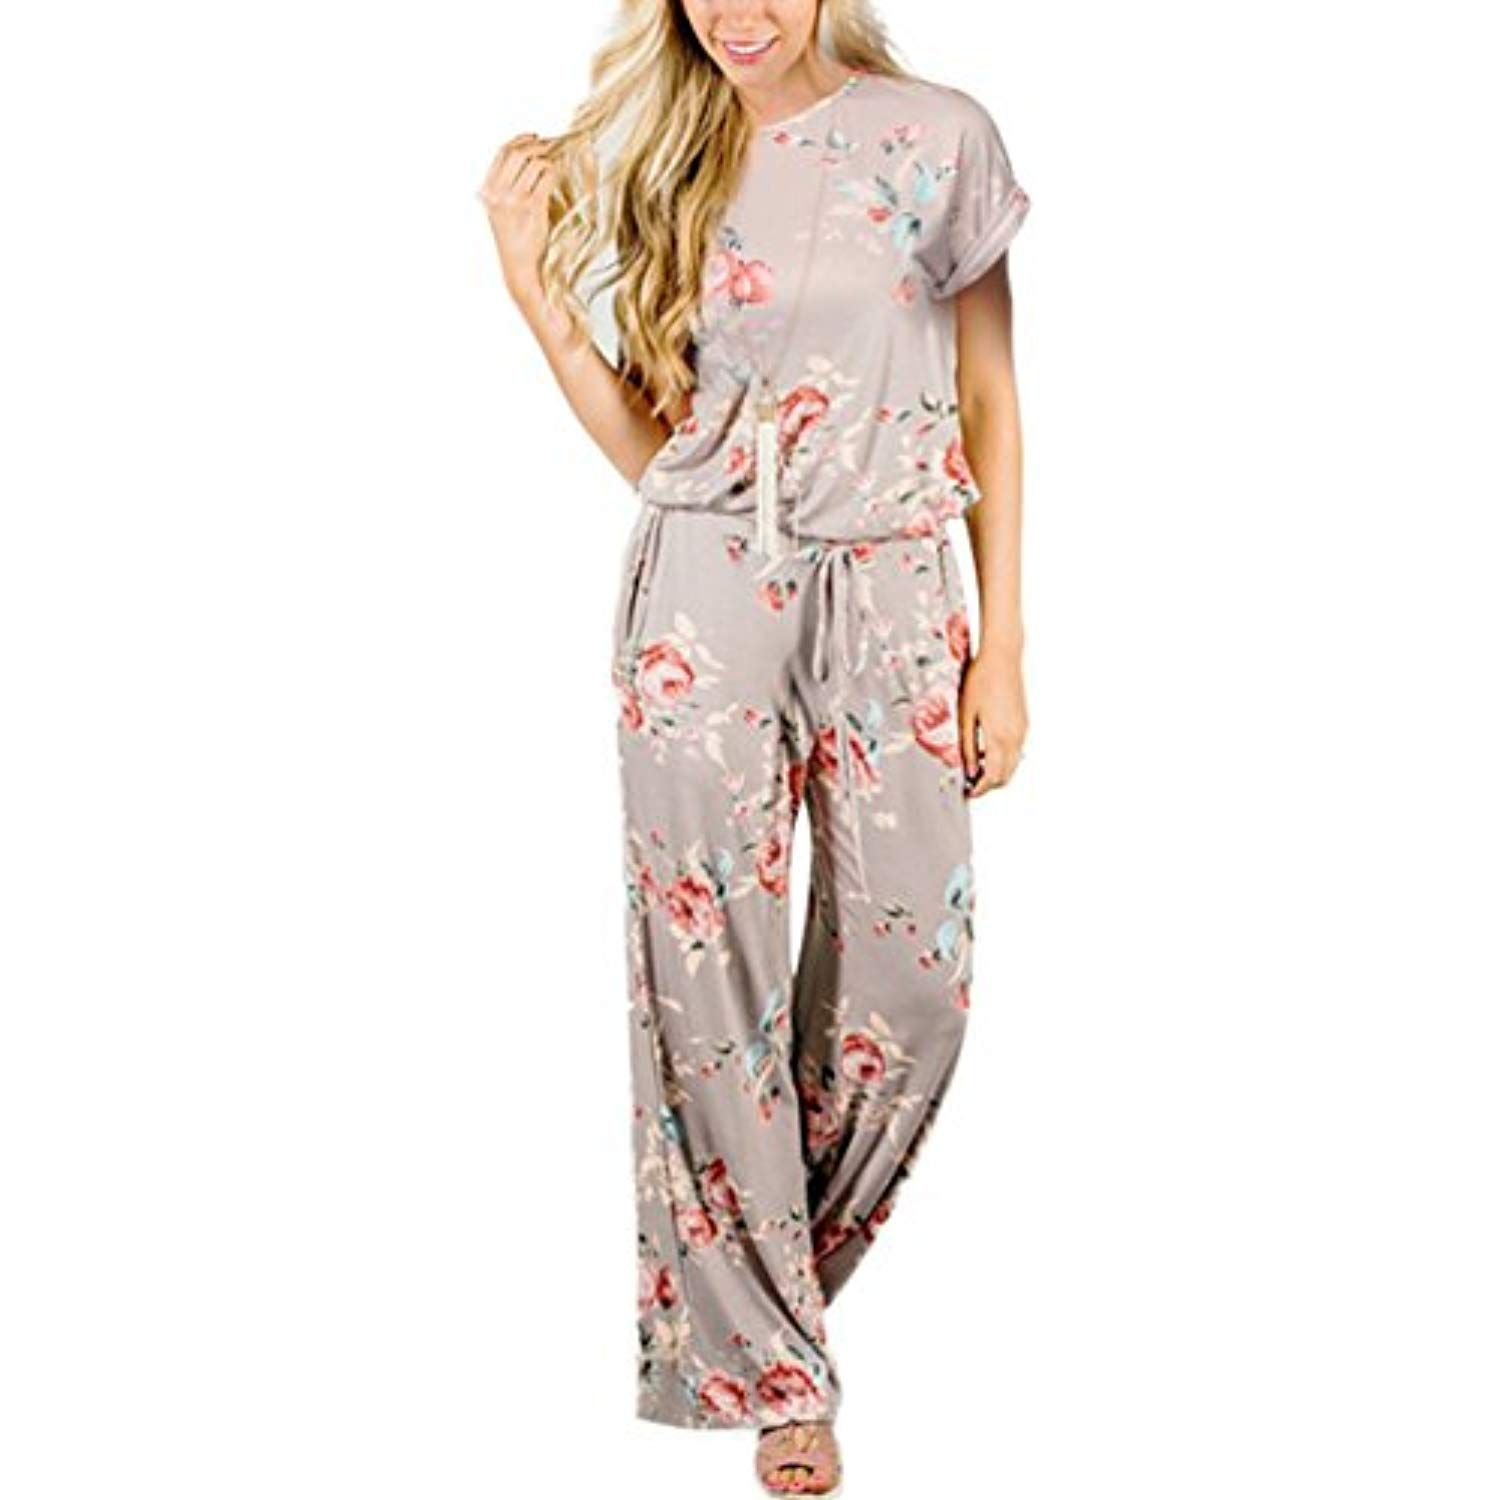 Richcoco Womens Summer Floral Printed Jumpsuit Casual Loose Short Sleeve Tie Back Jumpsuit Rompers